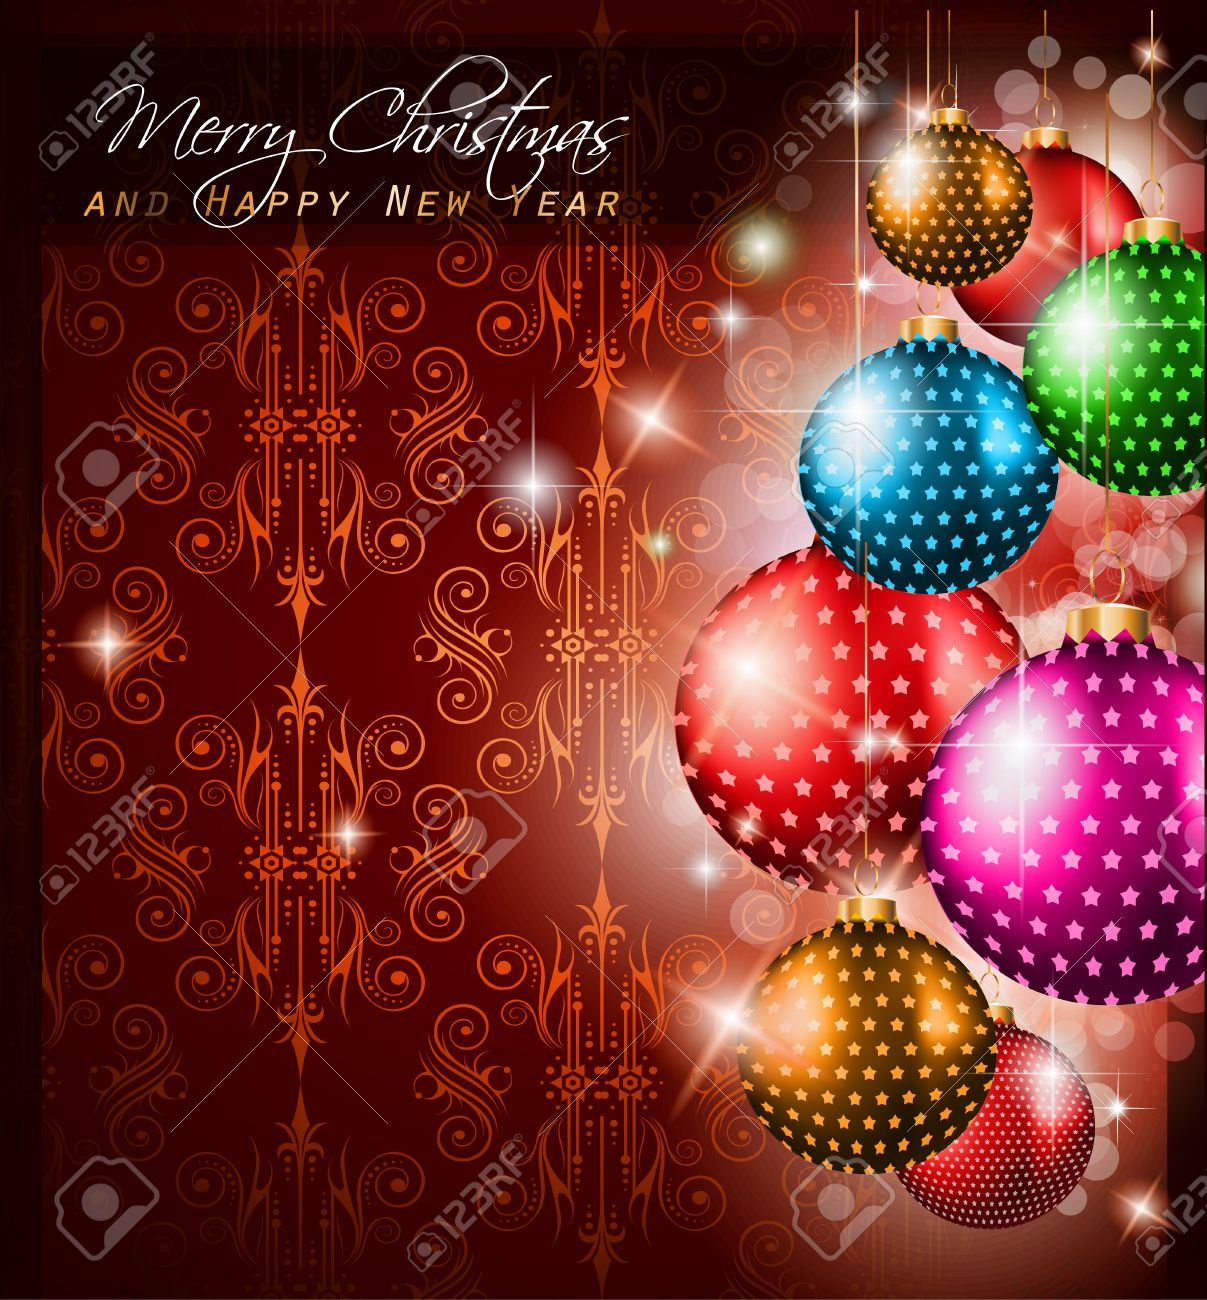 elegant classic christmas greetings background for flyers elegant classic christmas greetings background for flyers invitations cards or posters new baubles